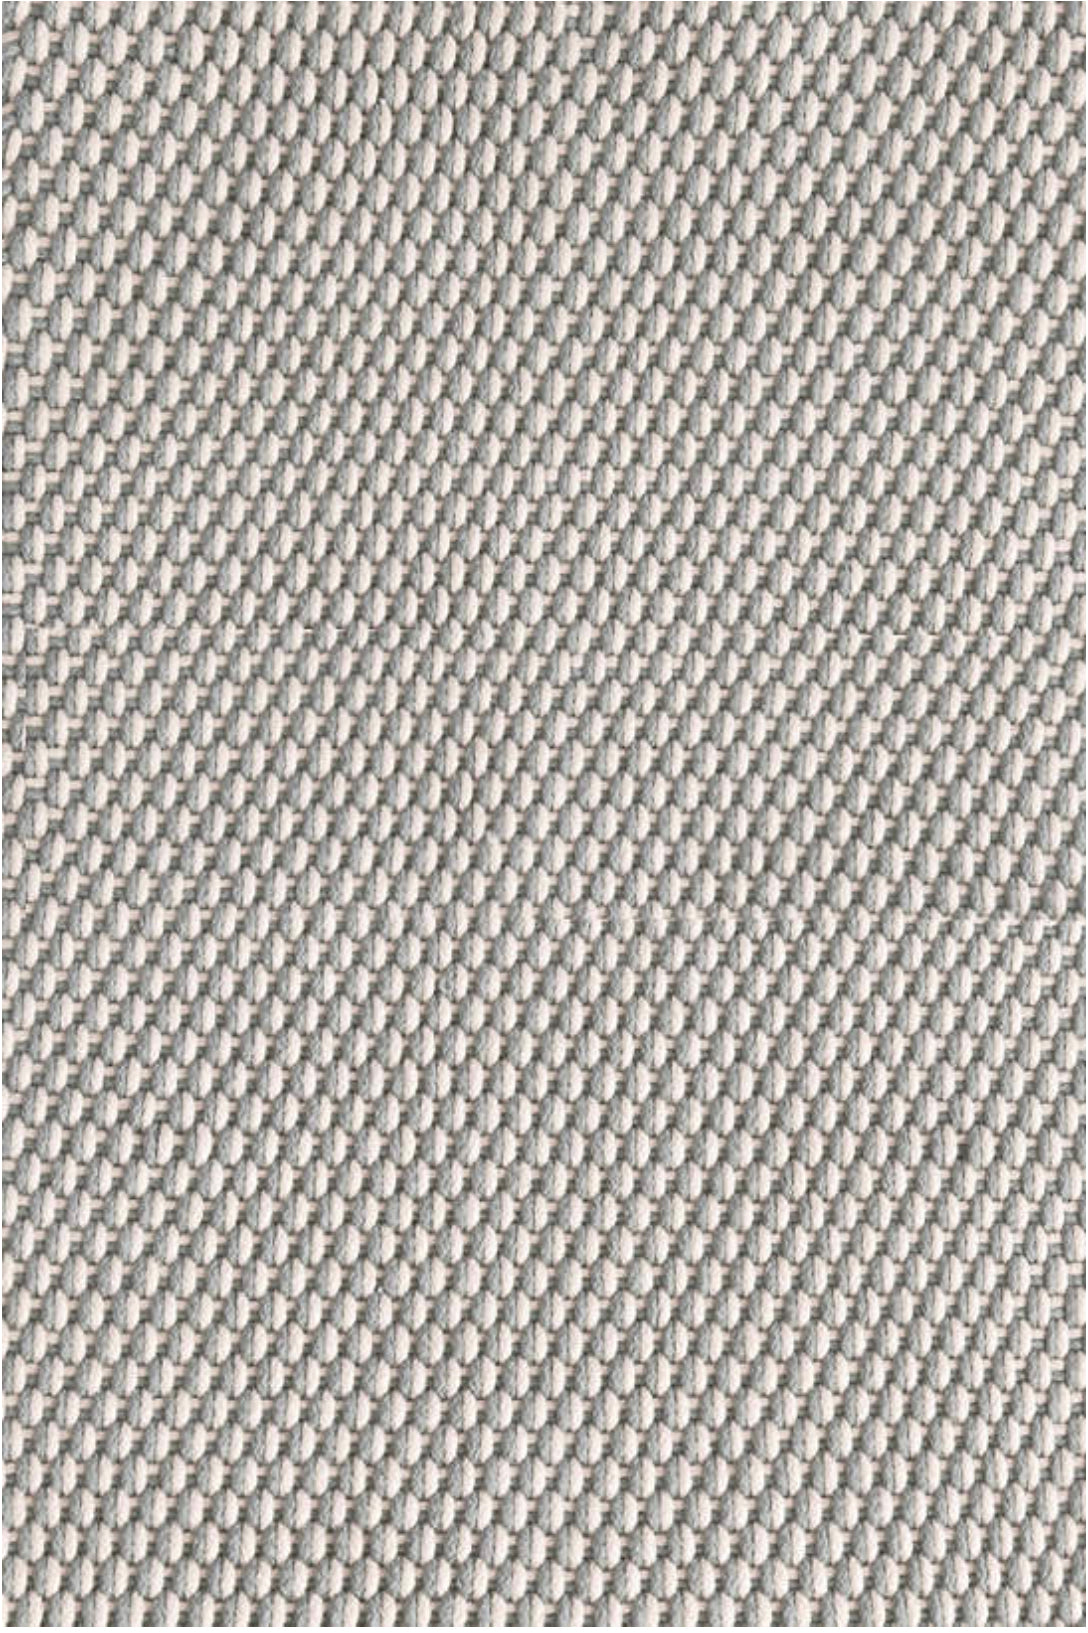 Two-Tone Rope Indoor Outdoor Rug | Platinum & Ivory | 5'x8'